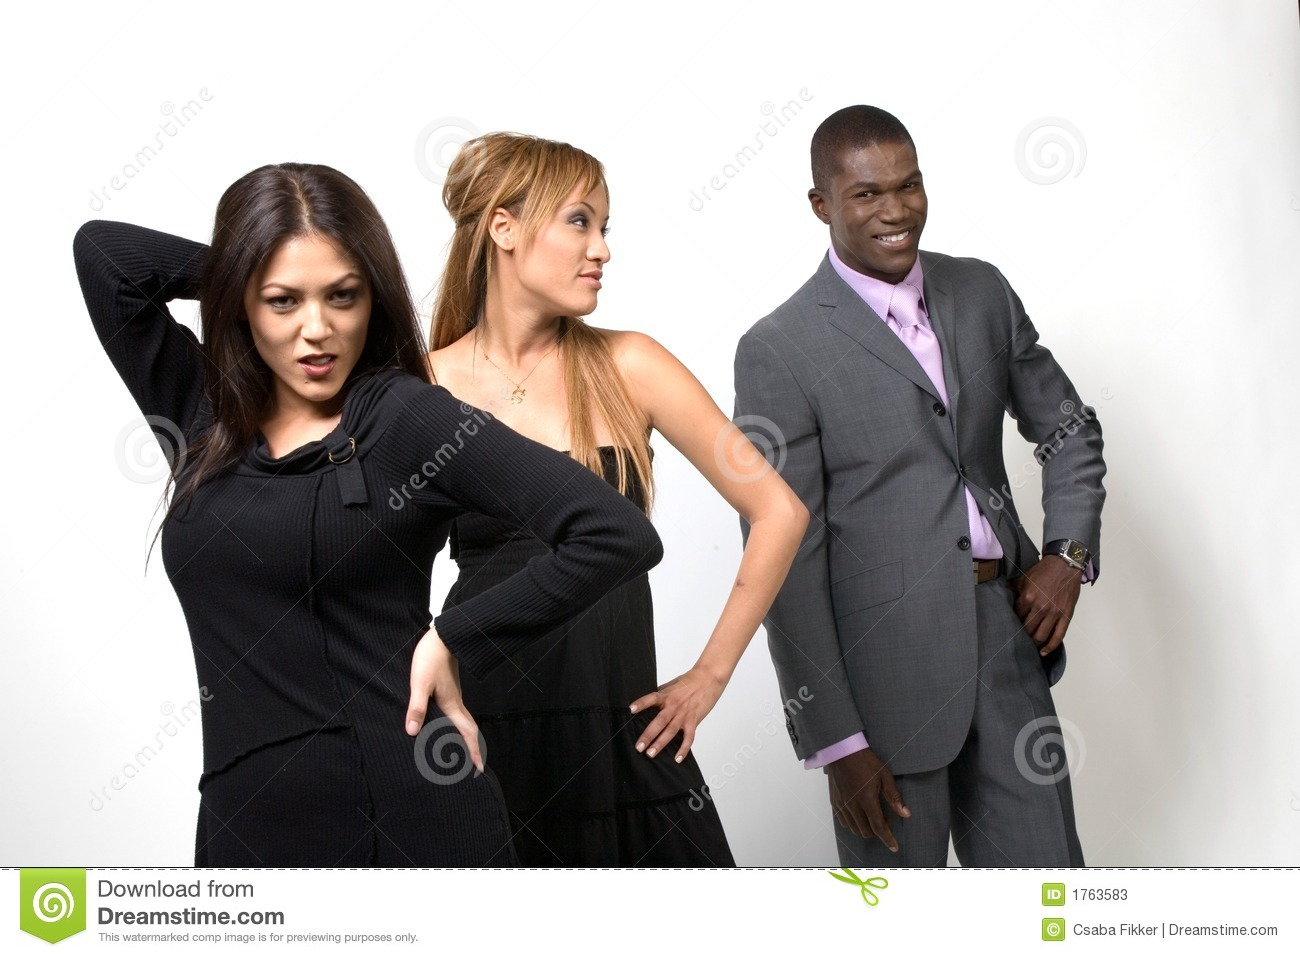 Stock Photos Three People Posing Image1763583